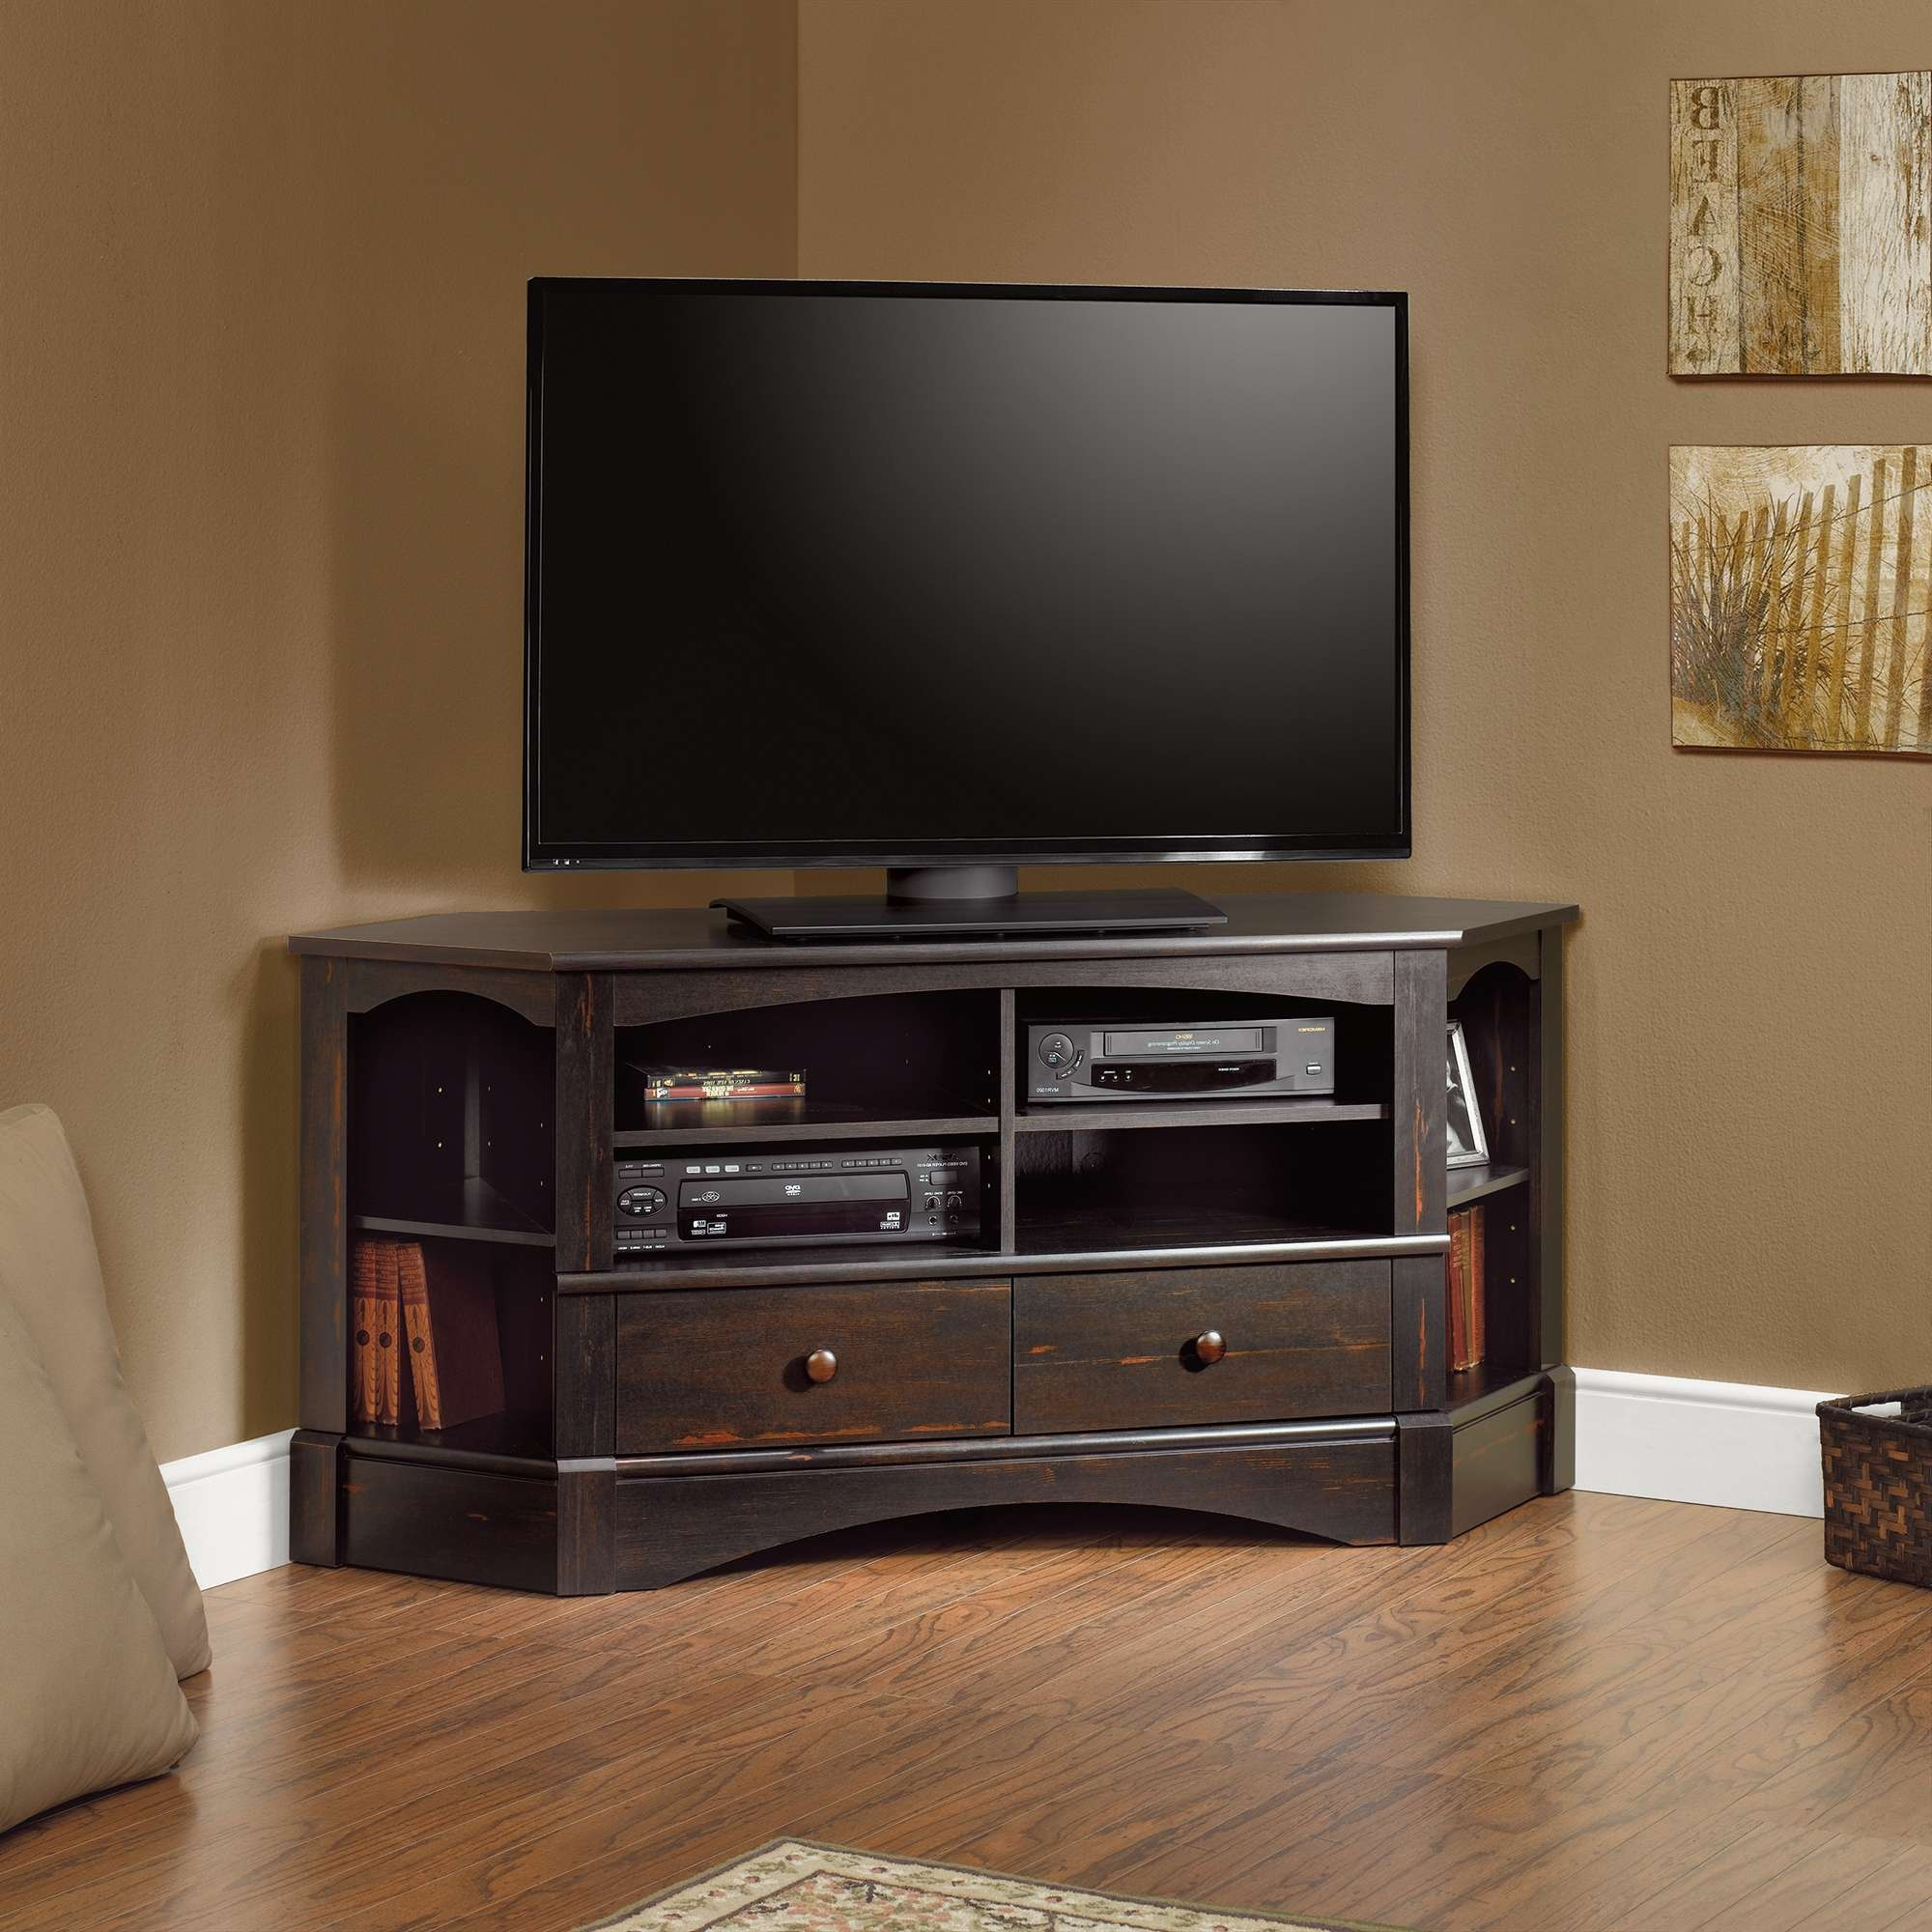 Harbor View | Corner Entertainment Credenza | 402902 | Sauder Within Tv Stands For Corners (View 3 of 15)